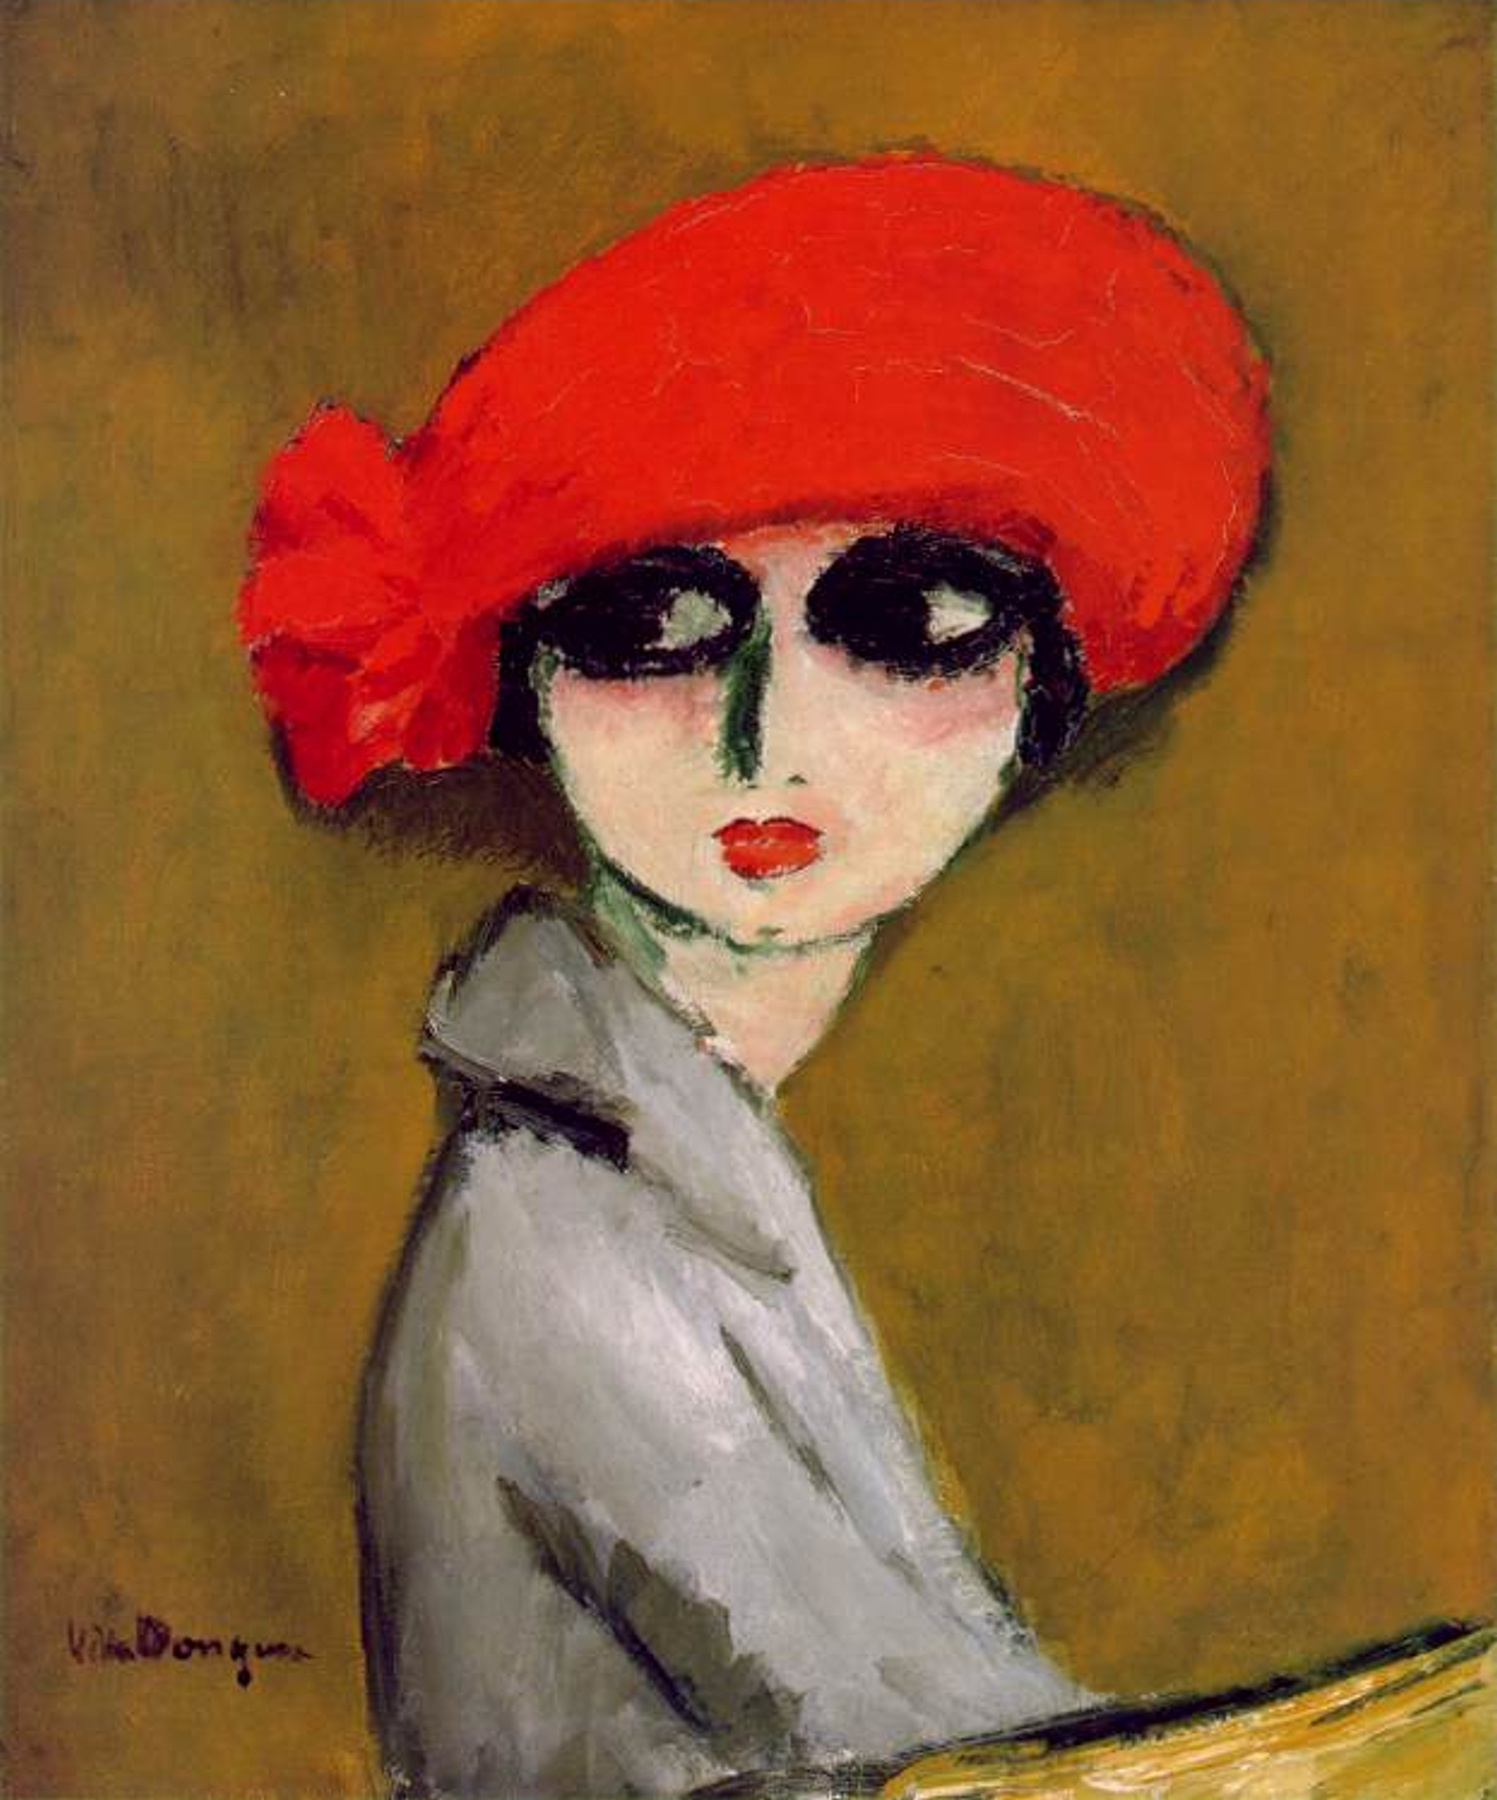 The Corn Poppy by Kees van Dongen, 1919